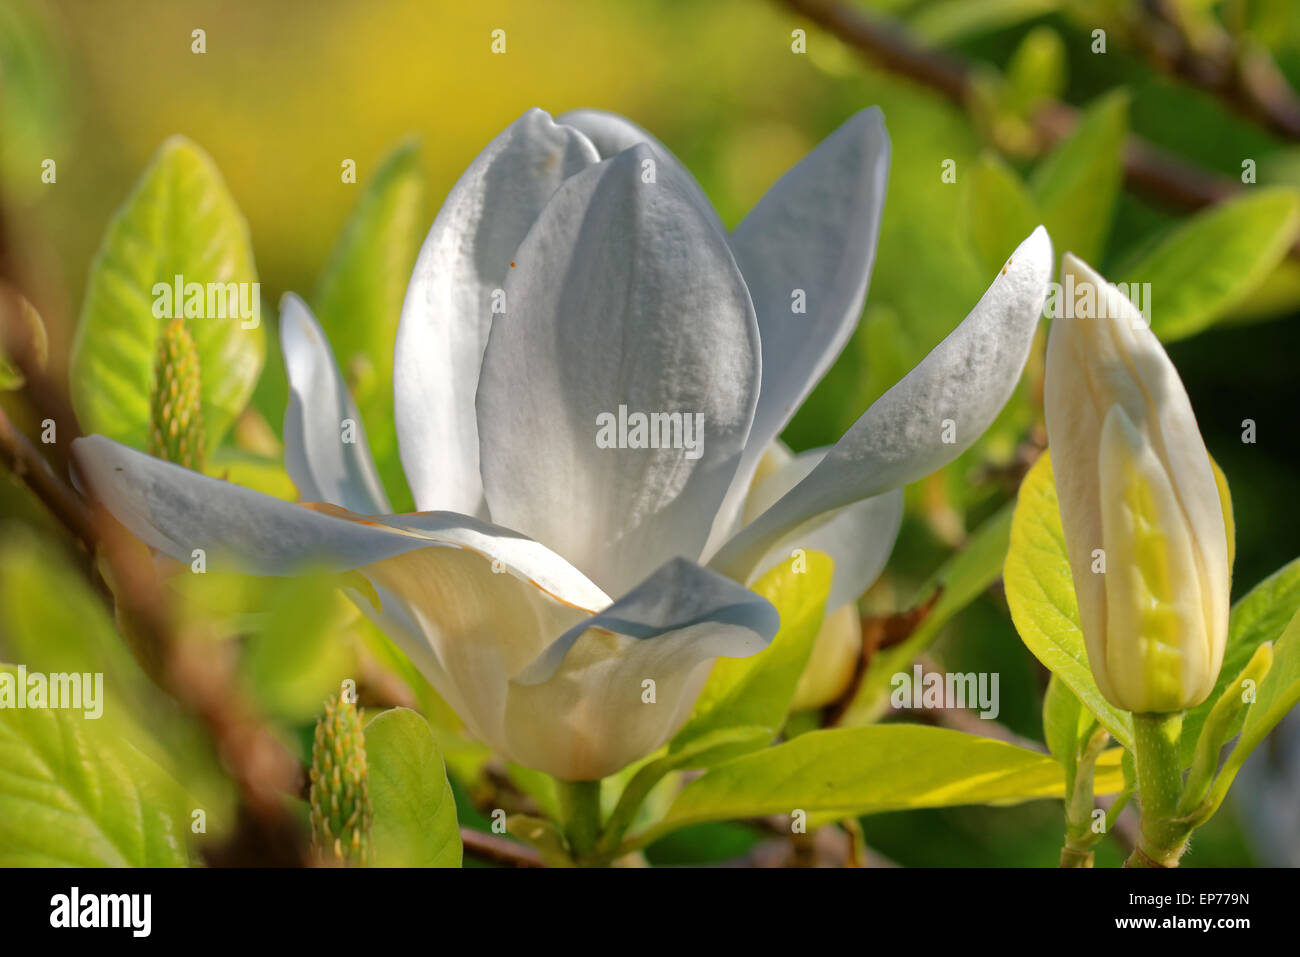 Magnolia is a large genus of about 210 flowering plant species in the subfamily Magnolioideae of the family Magnoliaceae Stock Photo